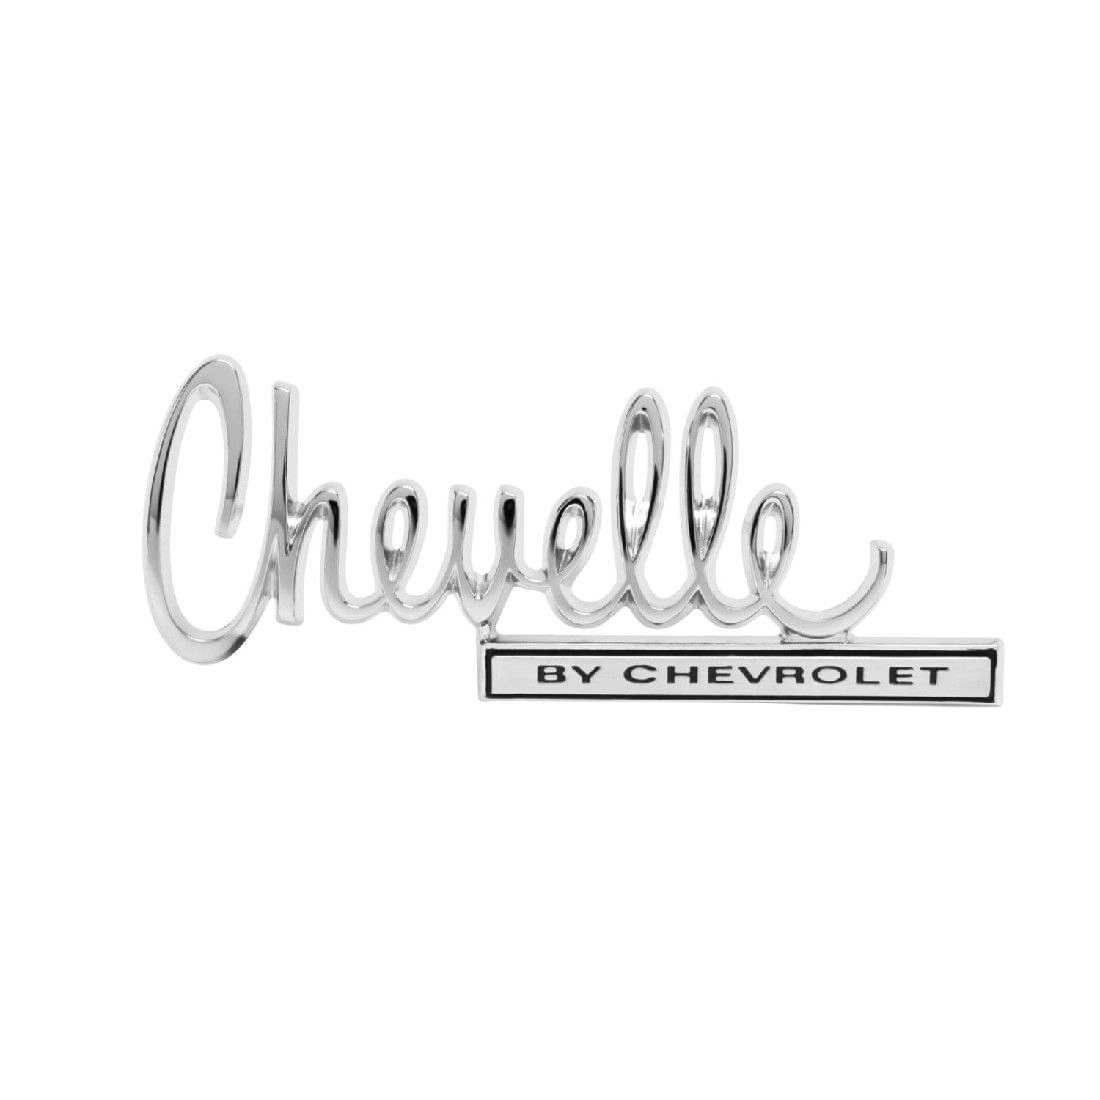 Chevrolet By Chevrolet Trunk Emblem